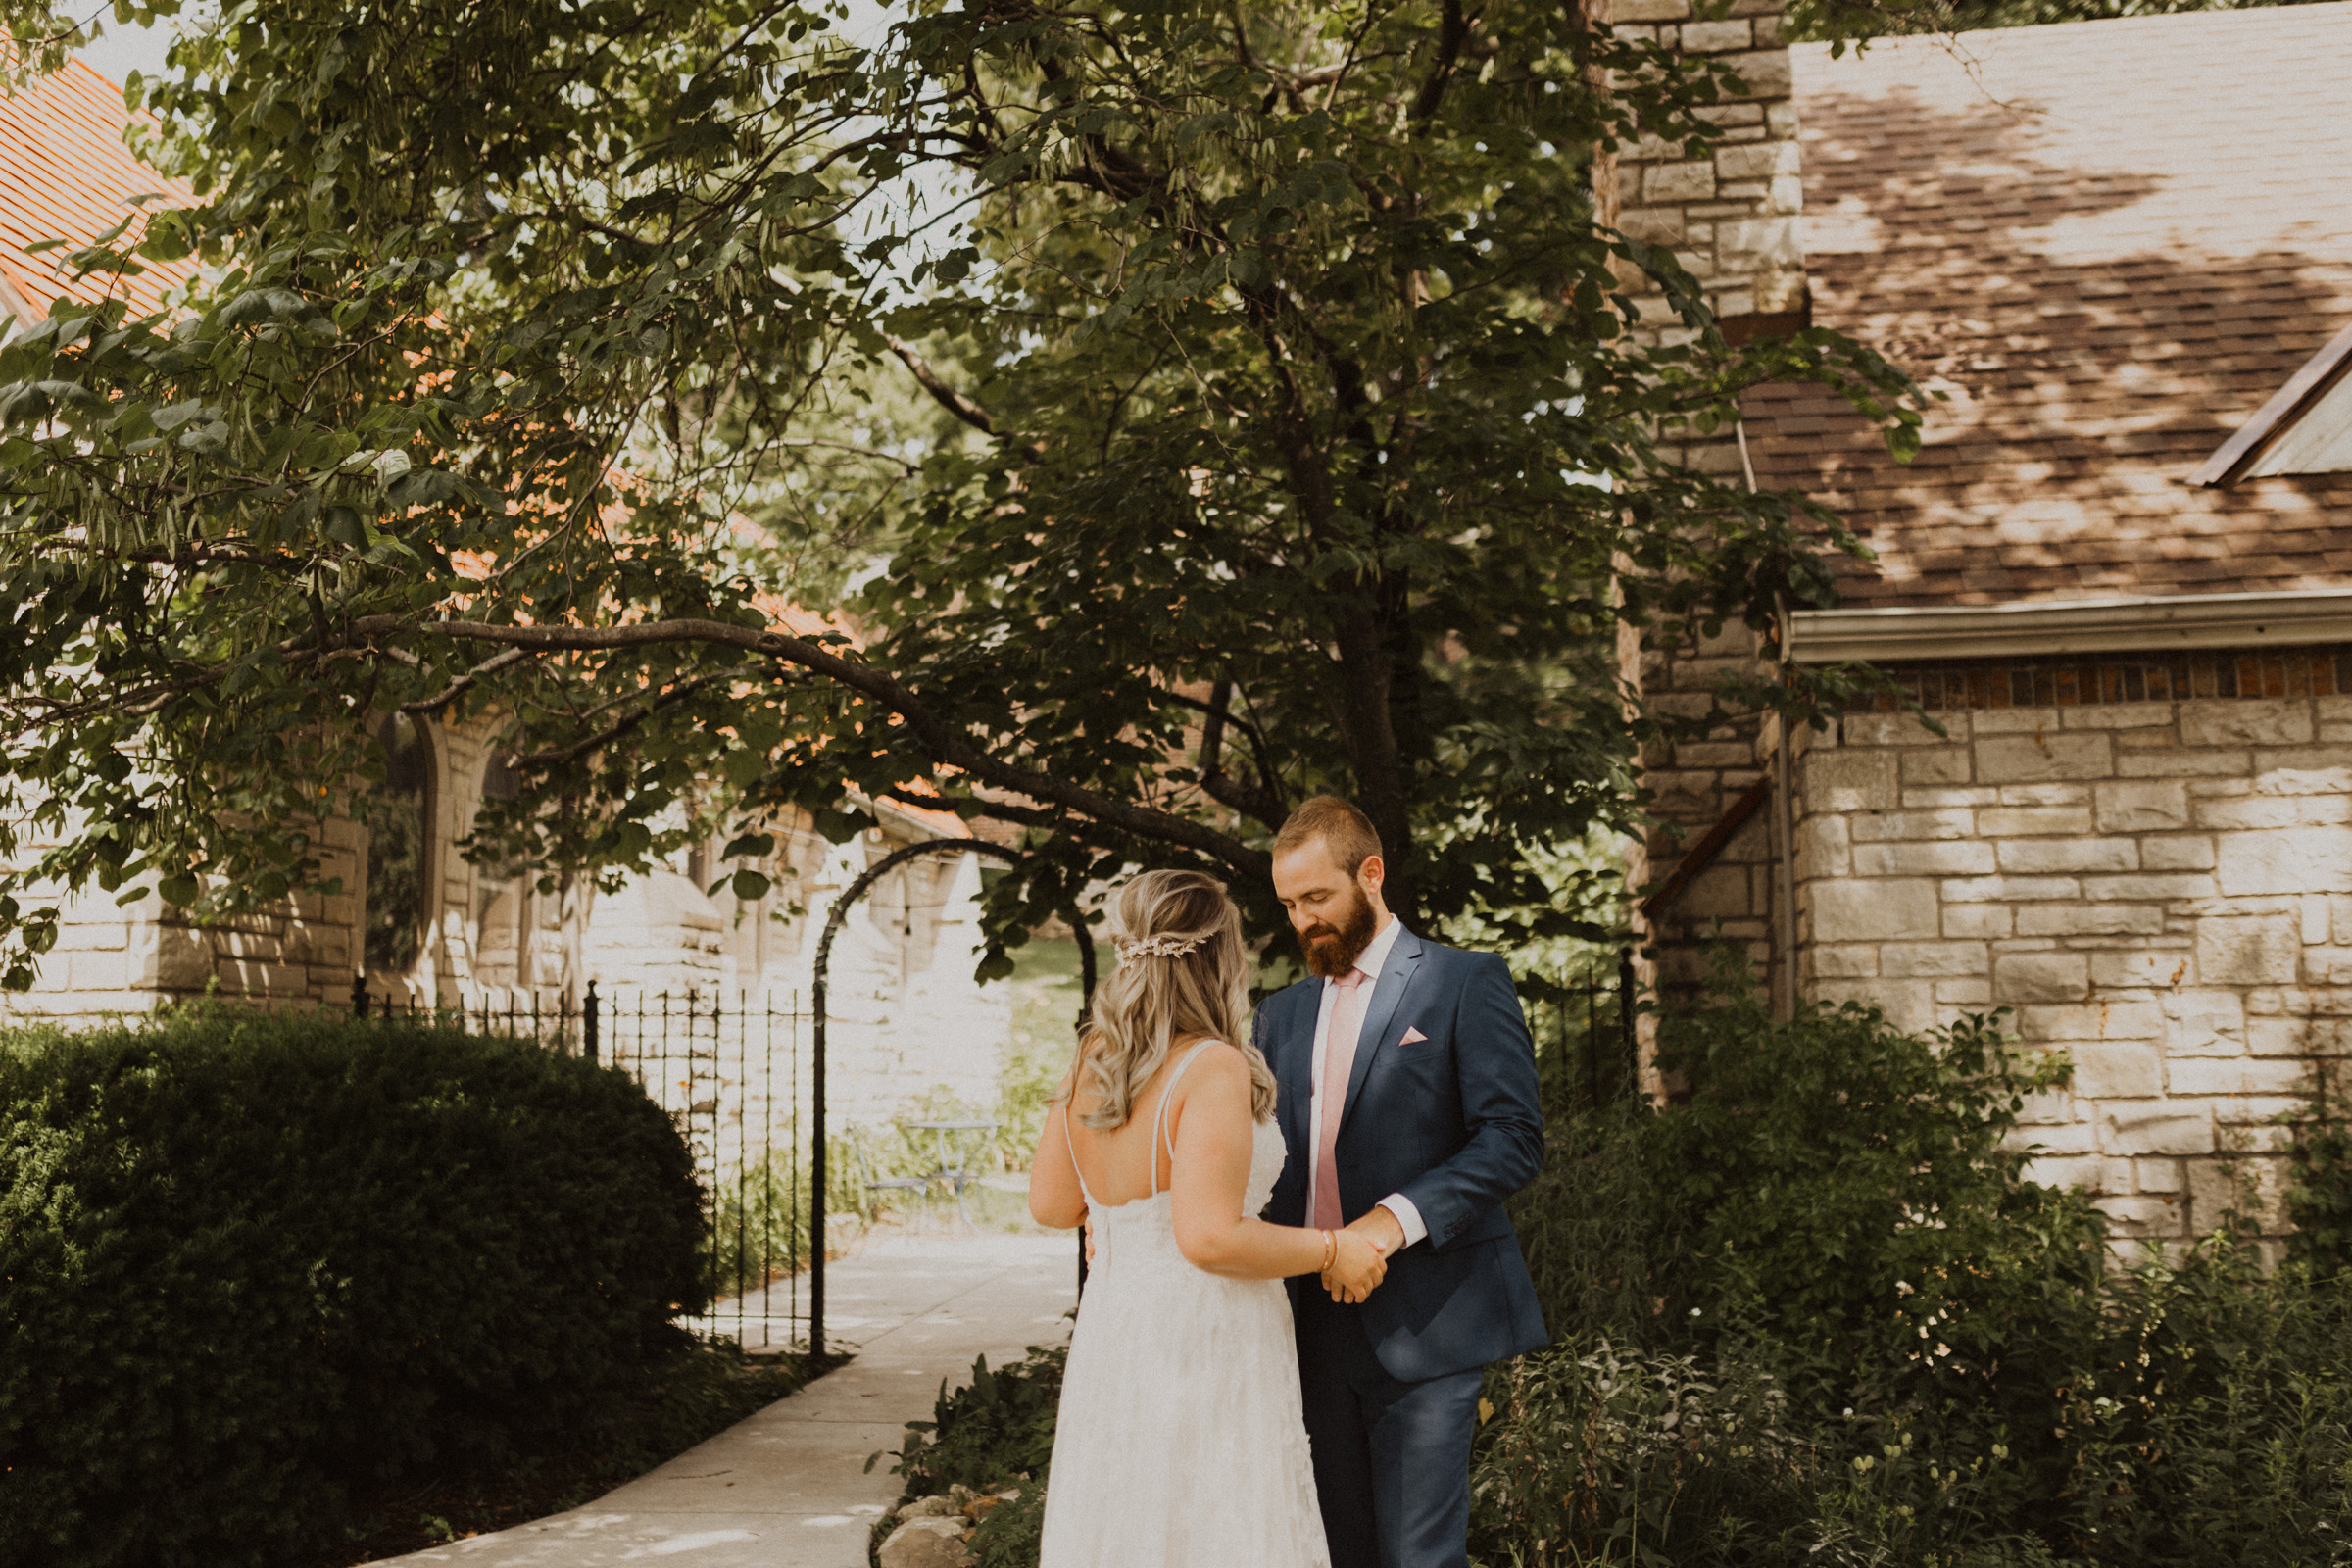 kansas city wedding photographer intimate summer wedding kc photography-14.jpg